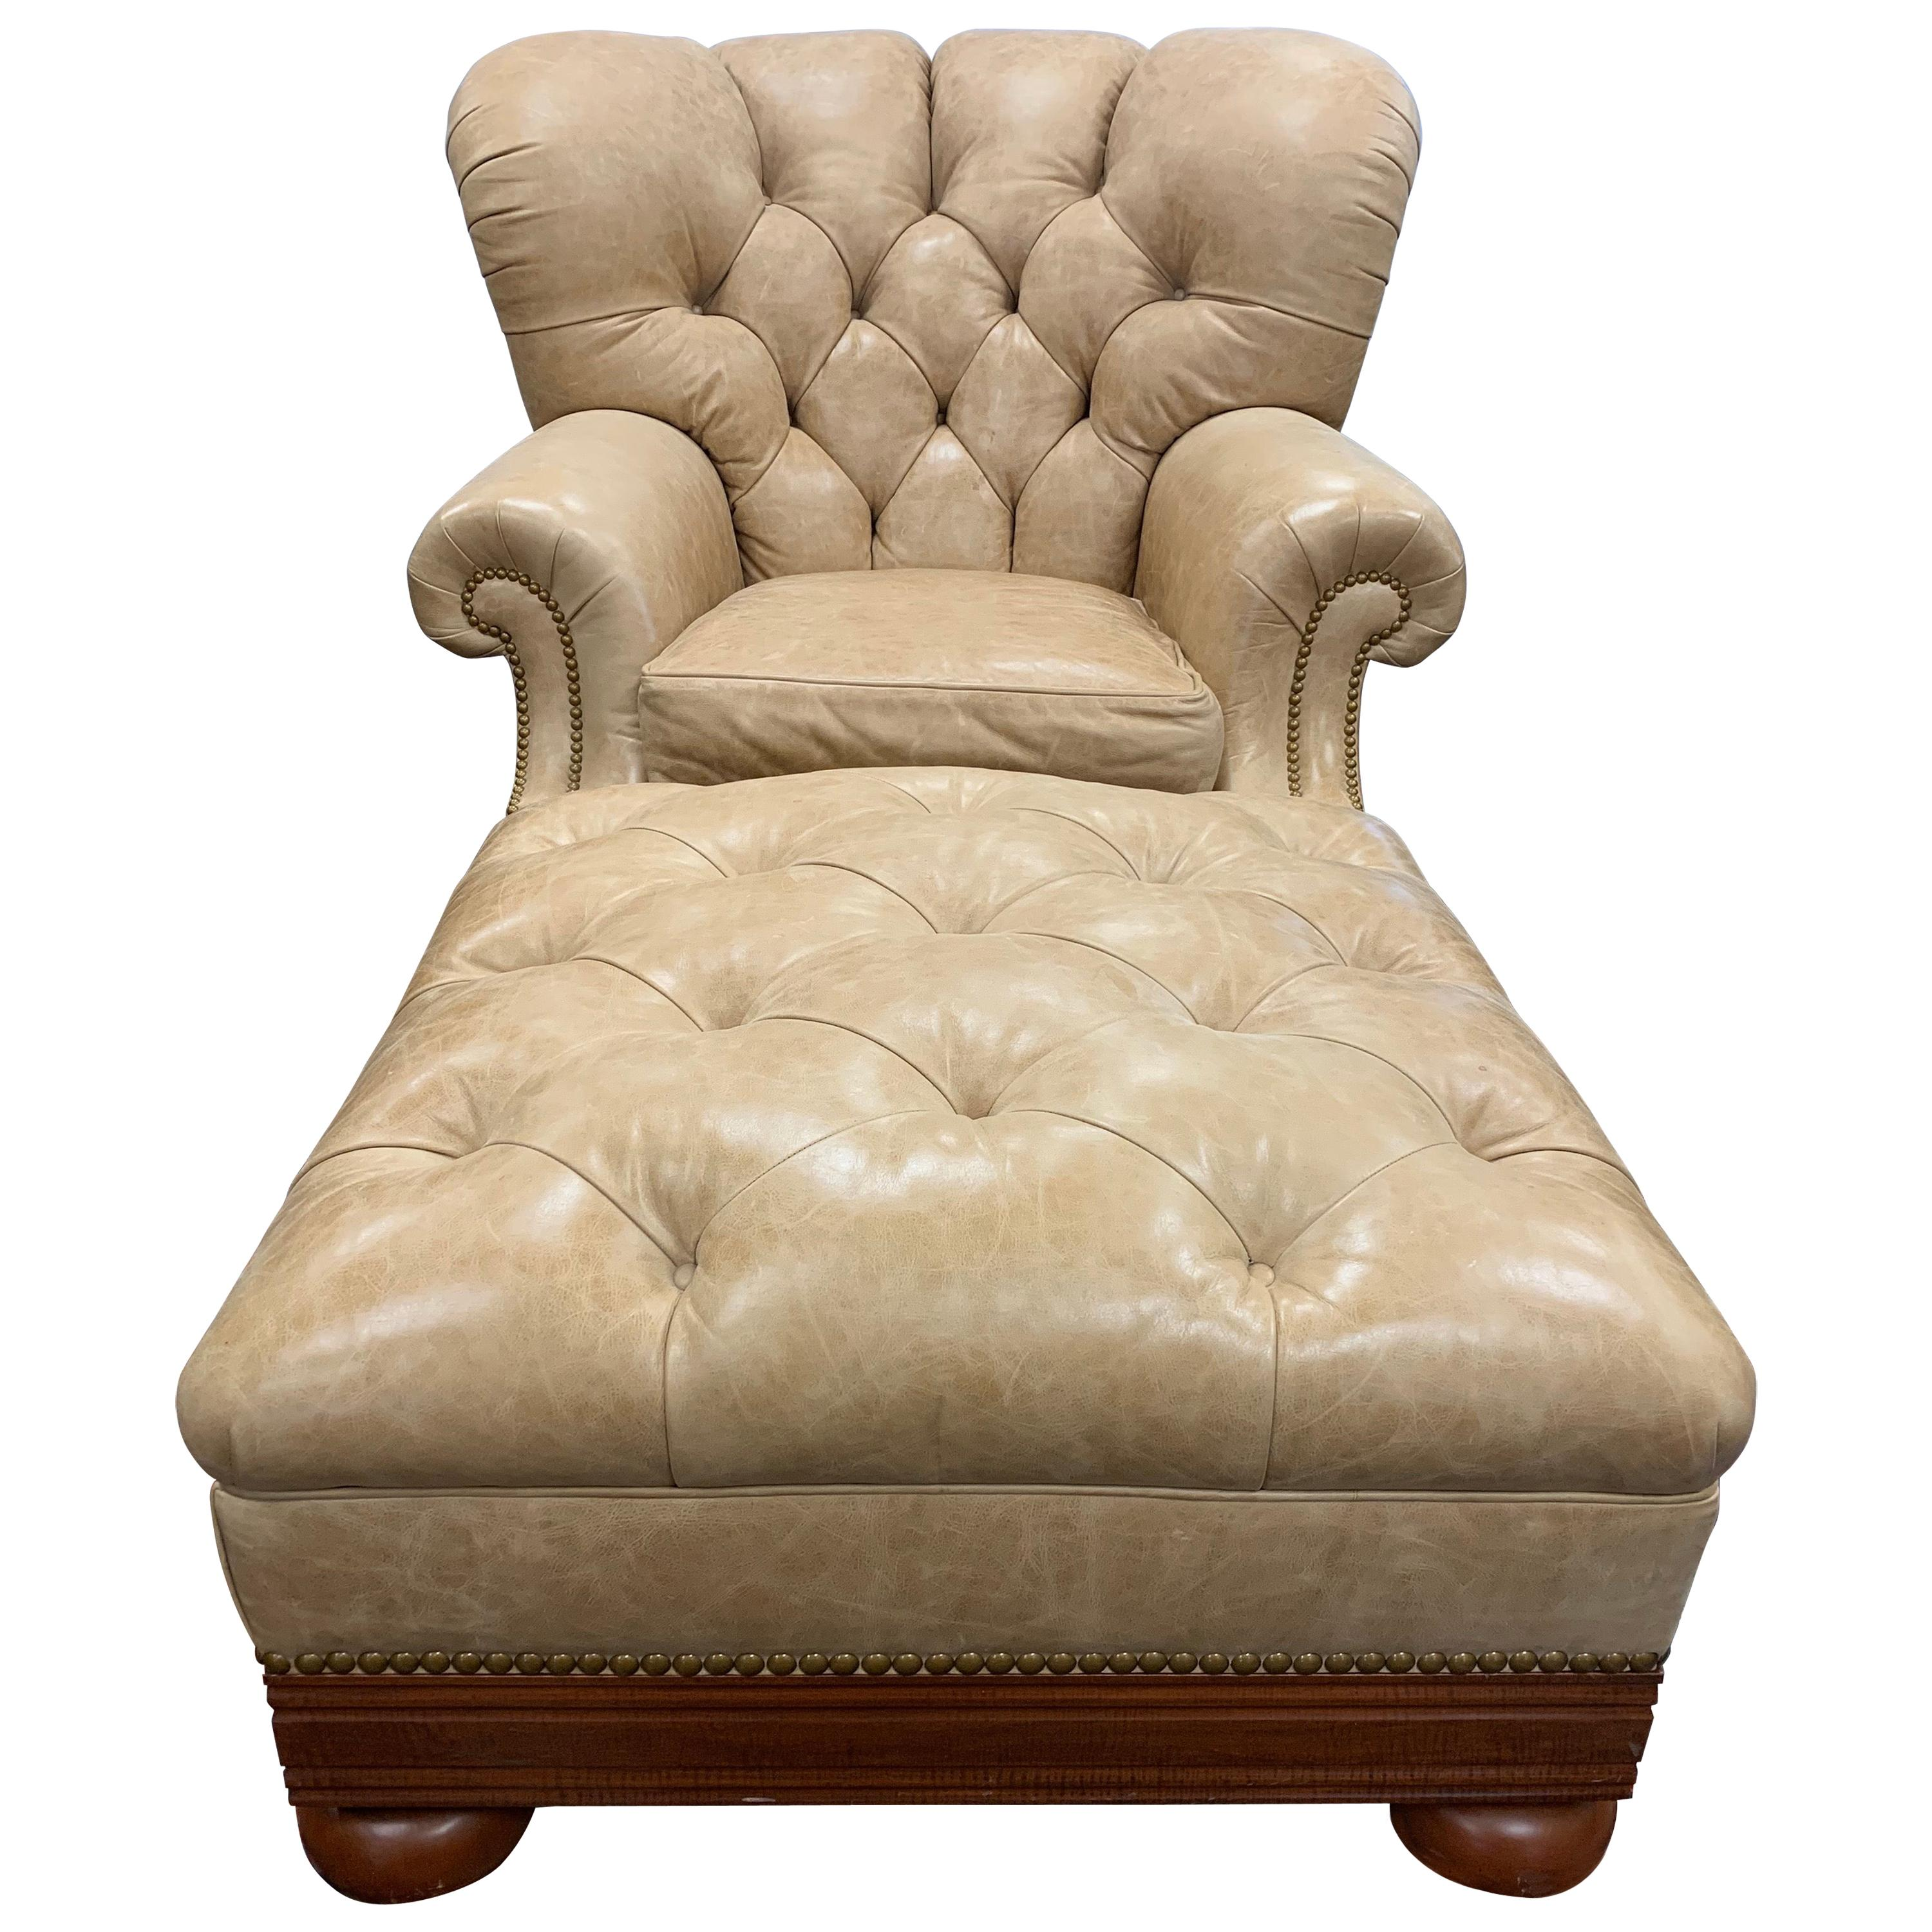 Ralph Lauren Tufted Beige Leather And Mahogany Writer S Club Chair And Ottoman